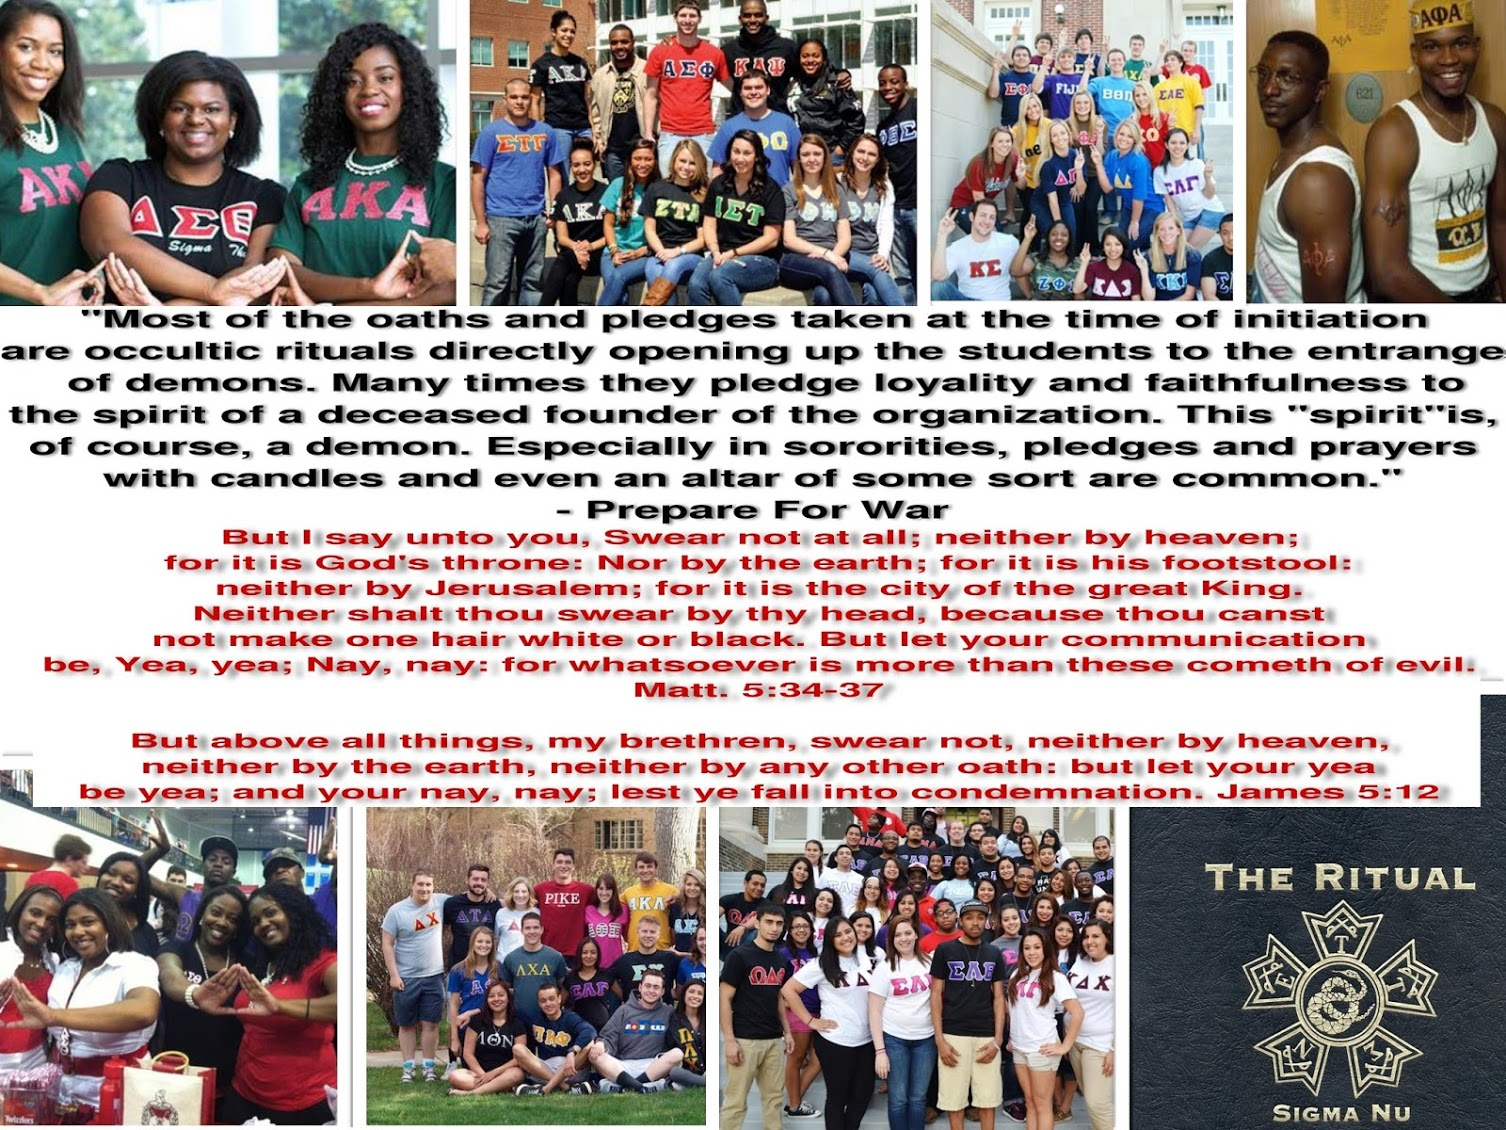 Thinking About Joining A Fraternity Or Sorority? The Demonic Spirits